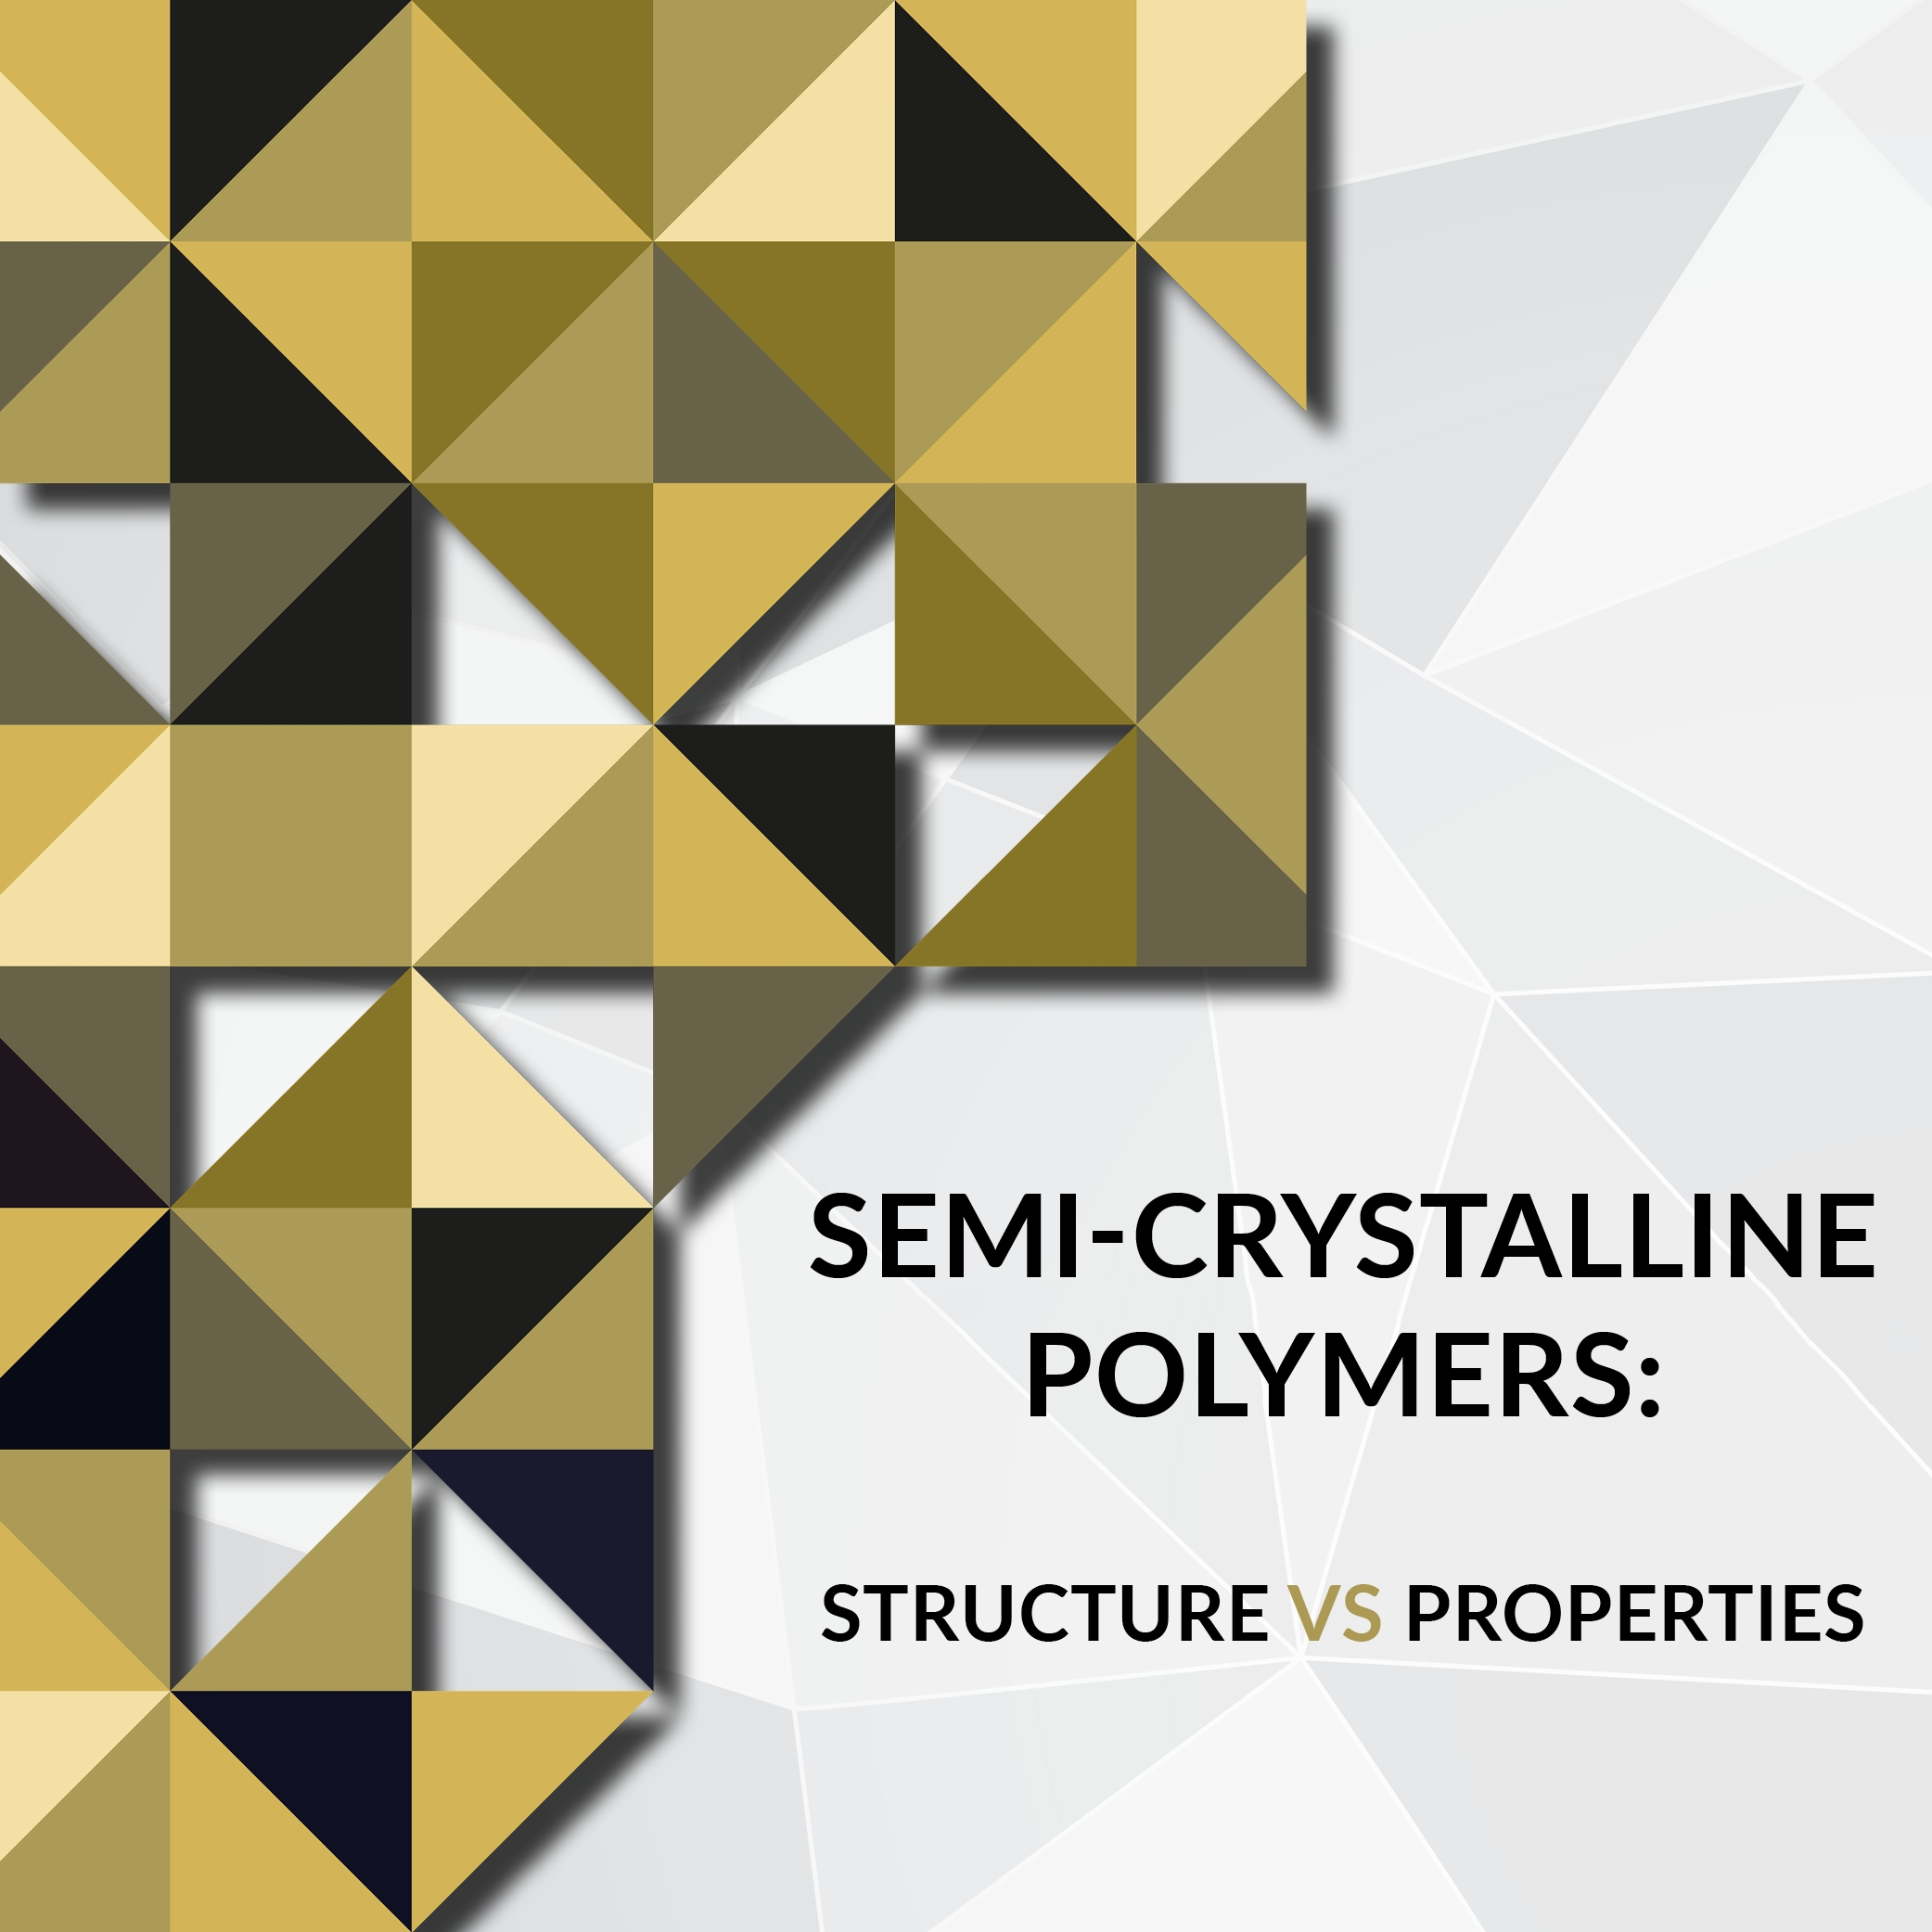 Semi-Crystalline-Polymers-Structure-vs-Properties-Grid-Block-Image-Size